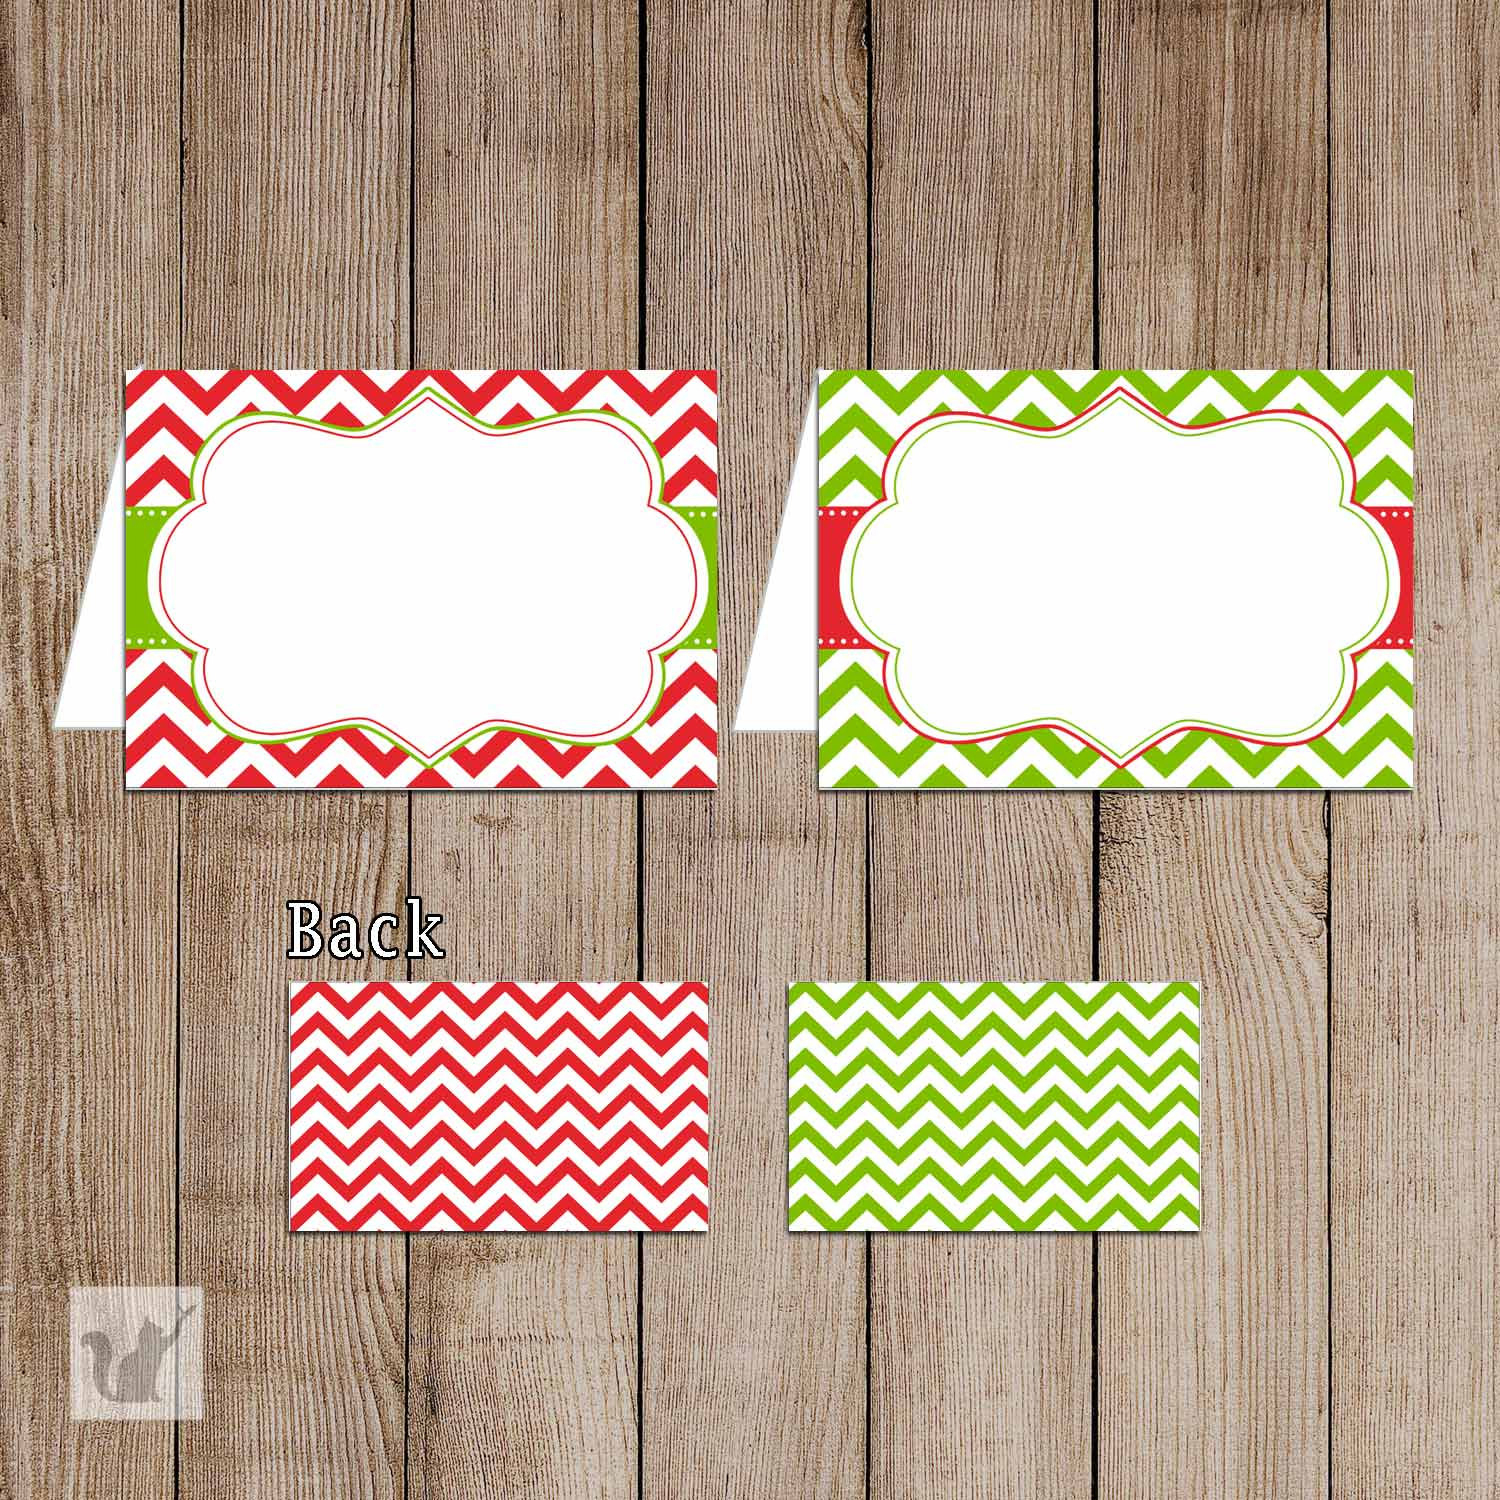 Free Printable Christmas Tent Cards – Festival Collections - Free Printable Christmas Tent Cards